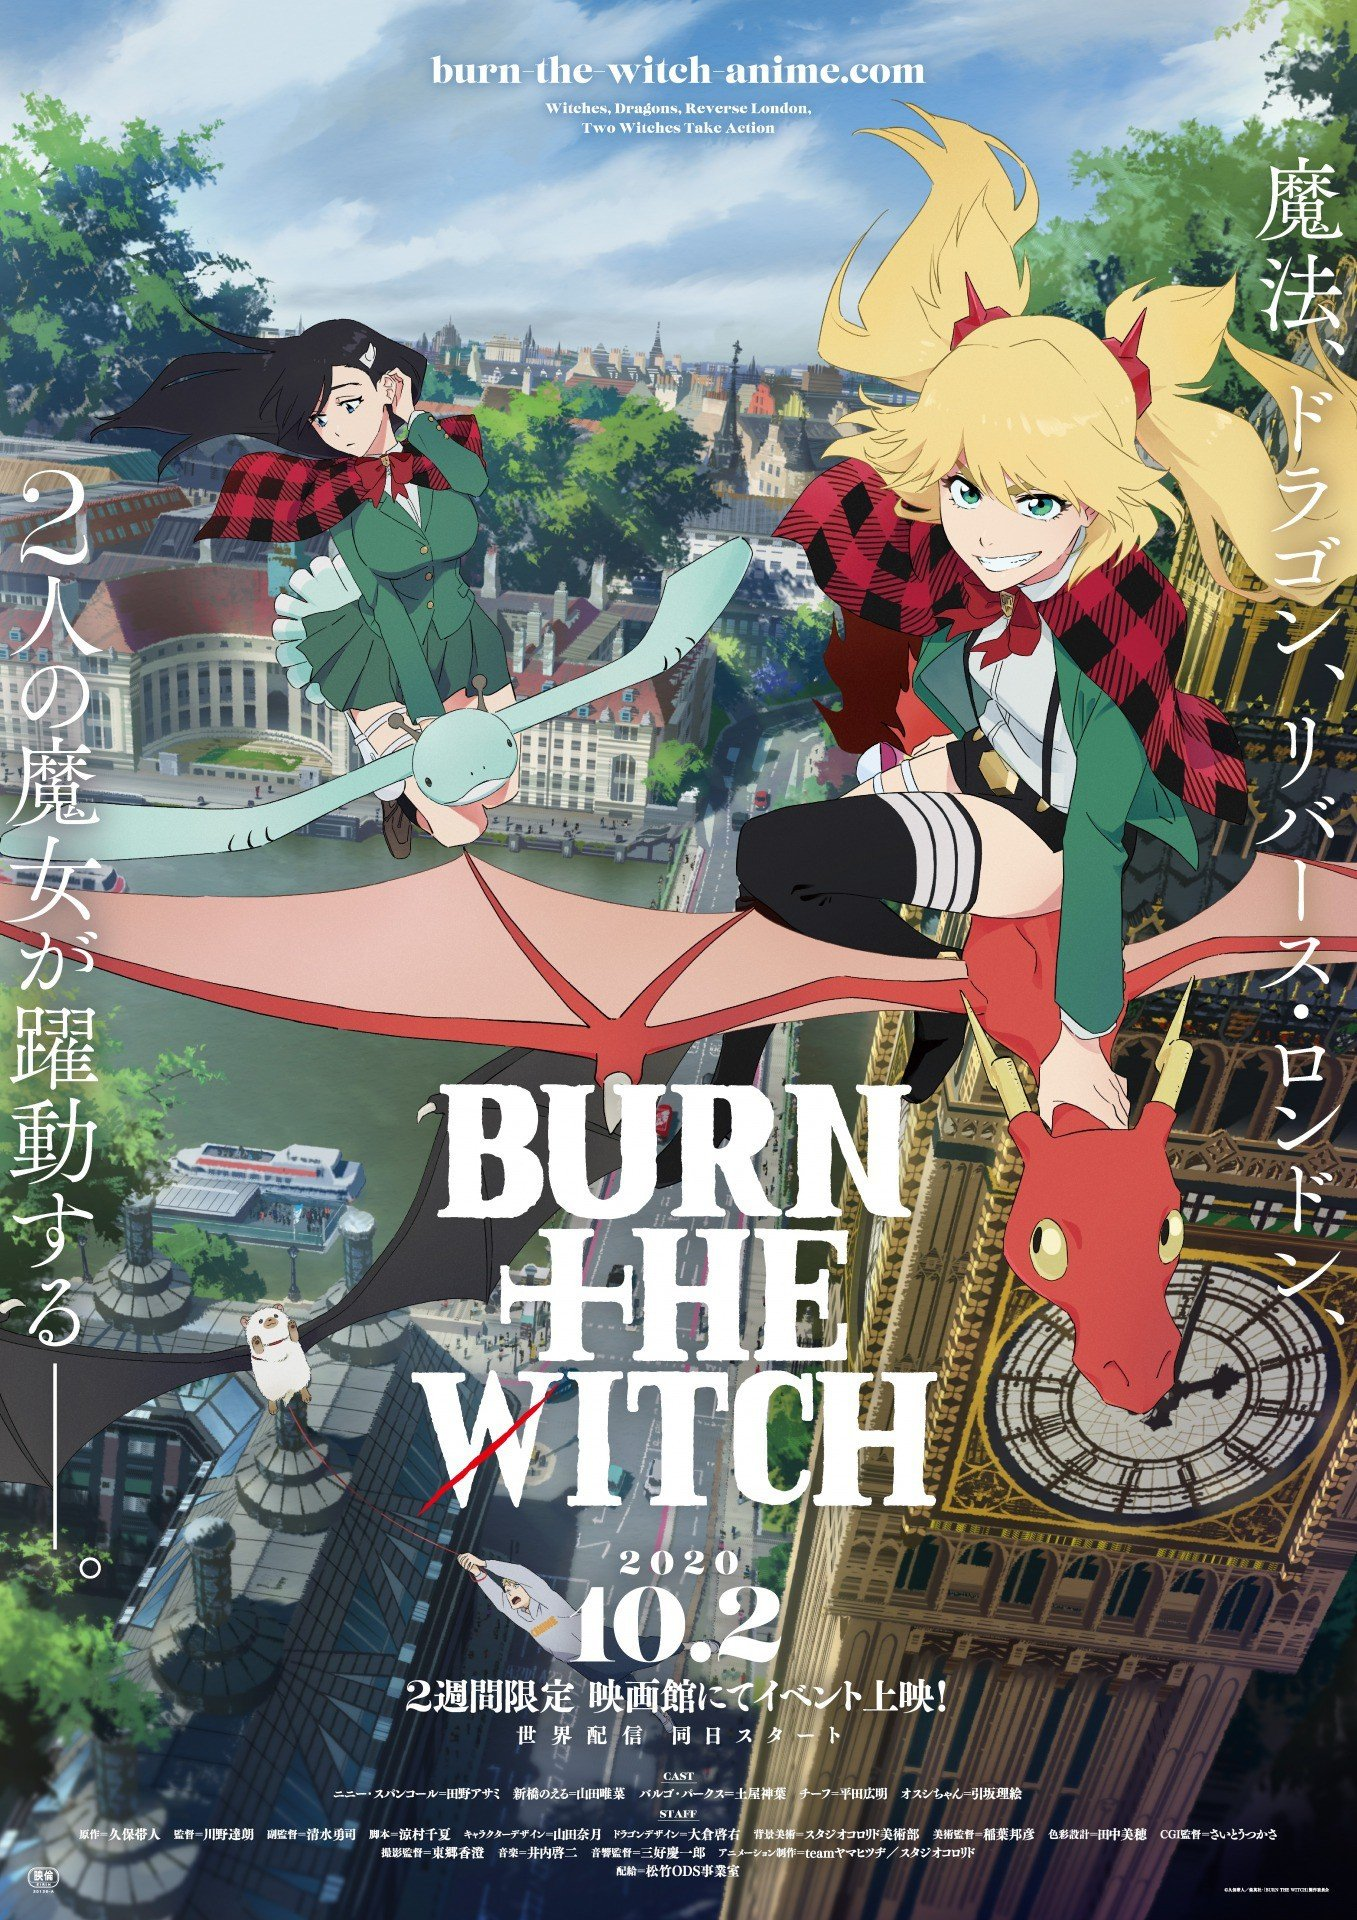 BURN THE WITCH 龙与魔女